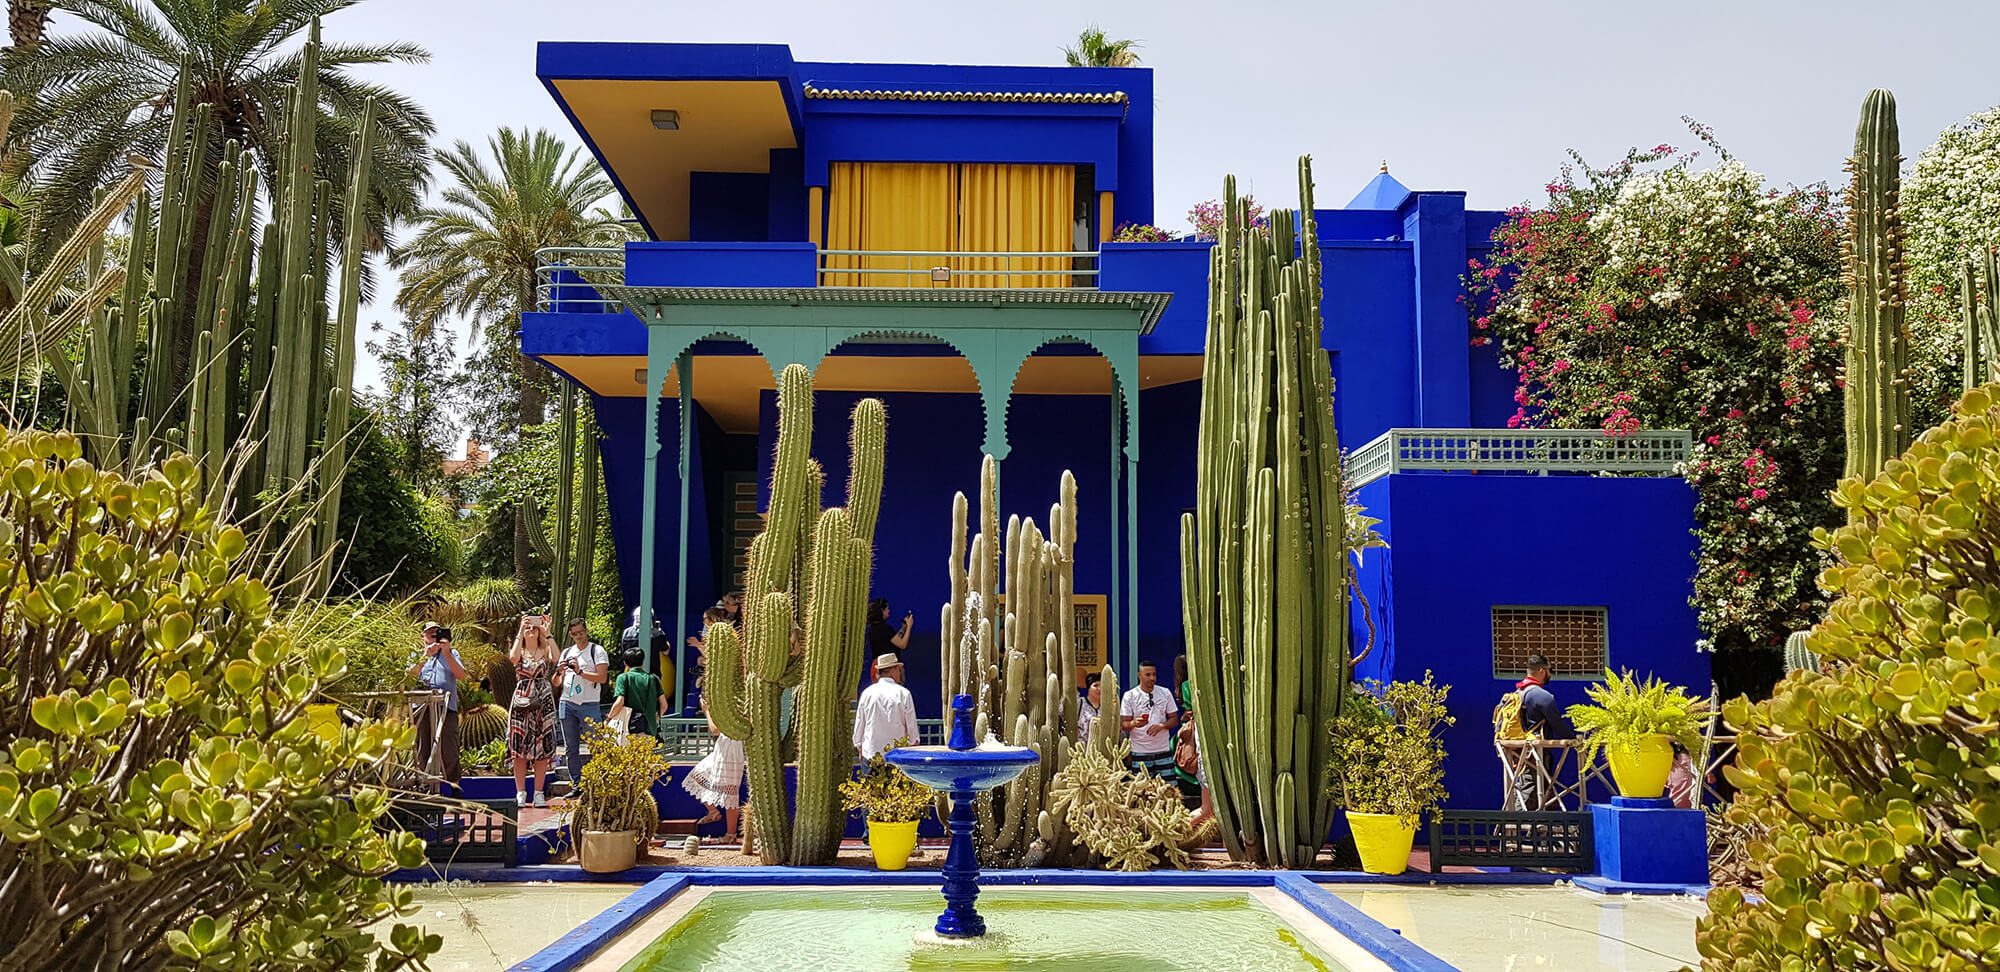 Sahara Desert Tour - Tap into the Magic of Marrakech where Old Meets New - Jardin Majorelle